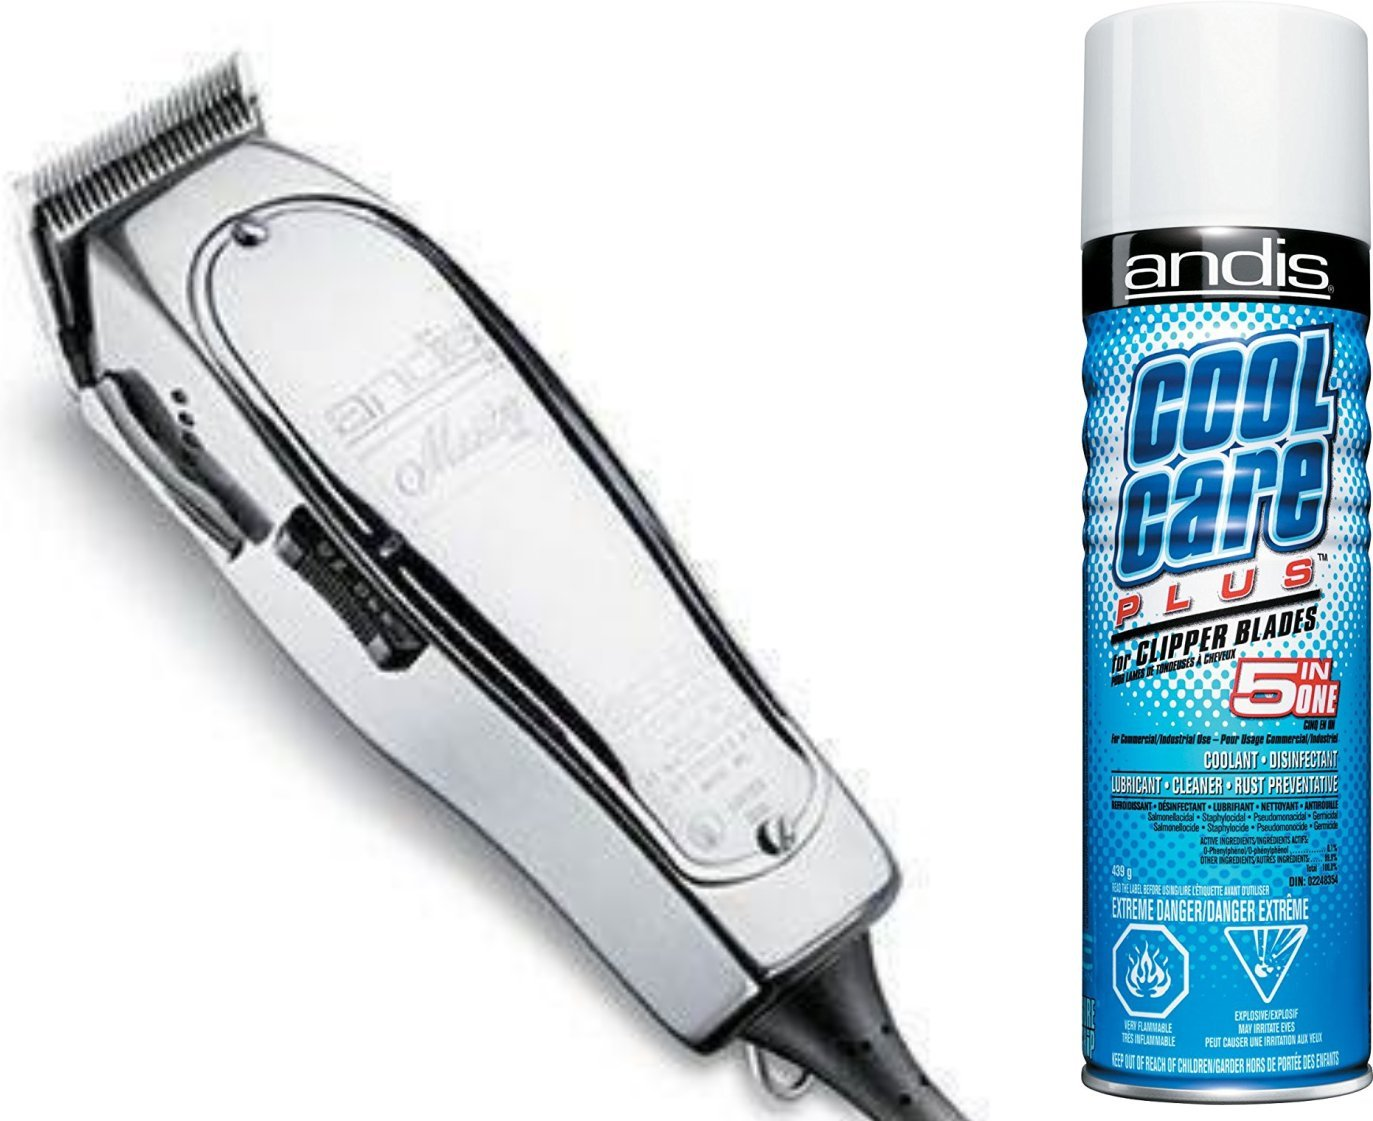 Andis LIGHTWEIGHT Hair Clippers, with Unbreakable Aluminum Housing and BONUS FREE Andis Cool Care Plus Clipper Blade Cleaner Included